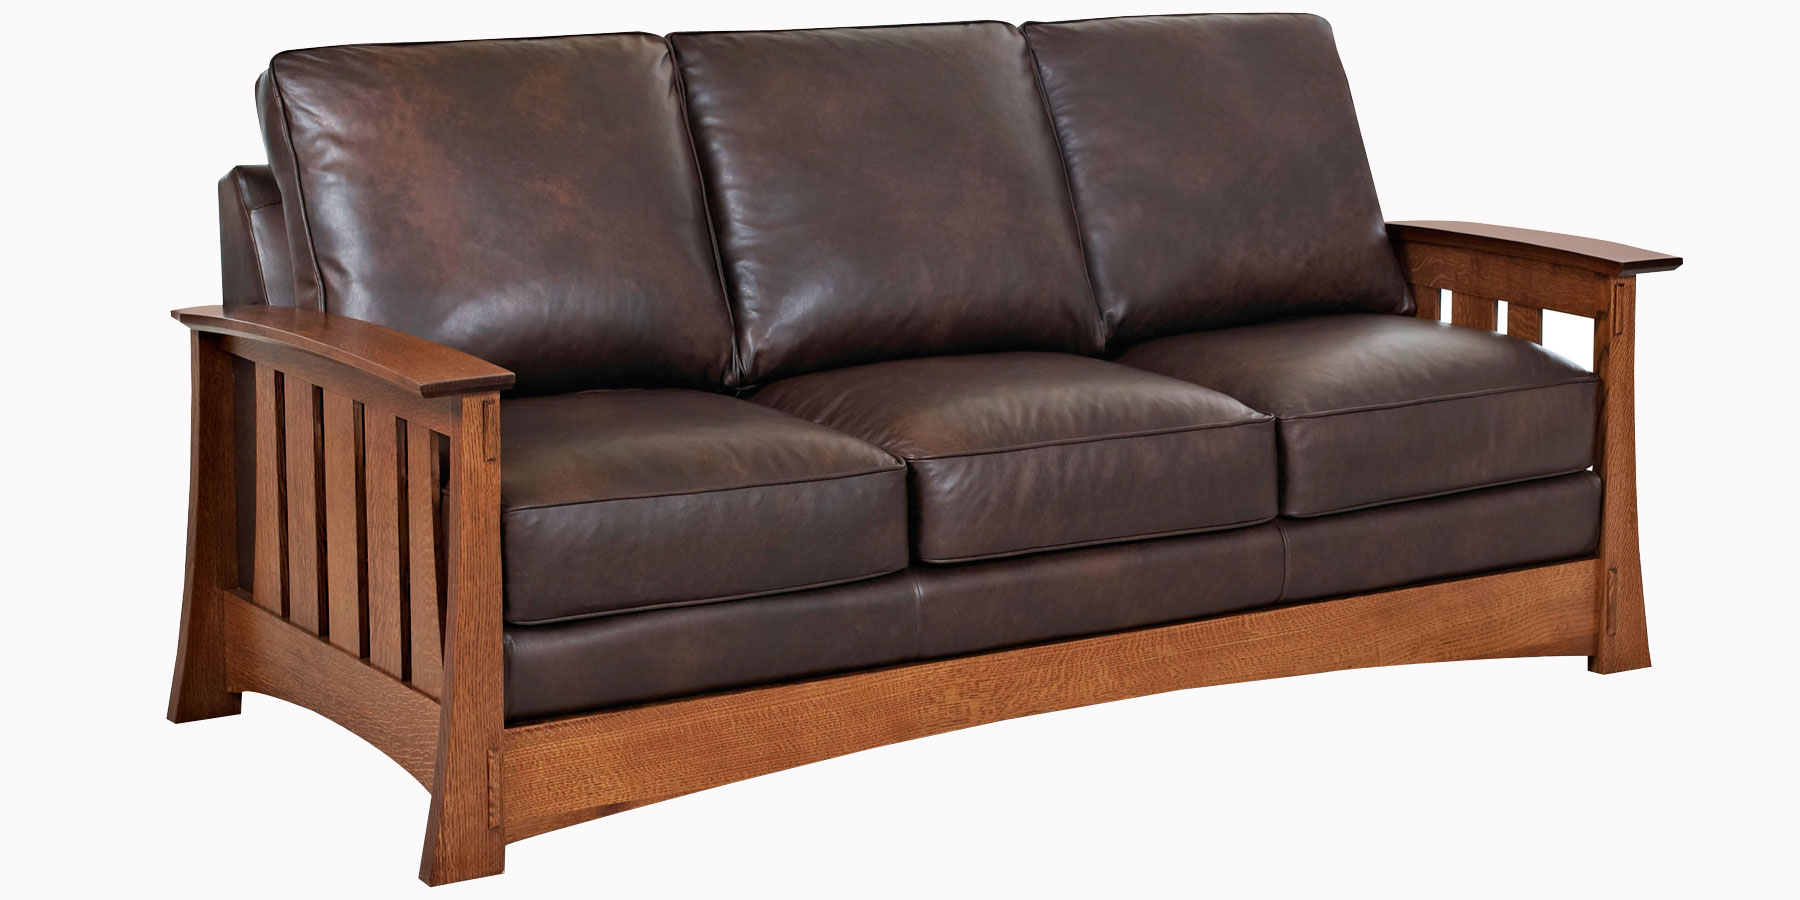 leather furniture stockton mission style group RLEWHYY